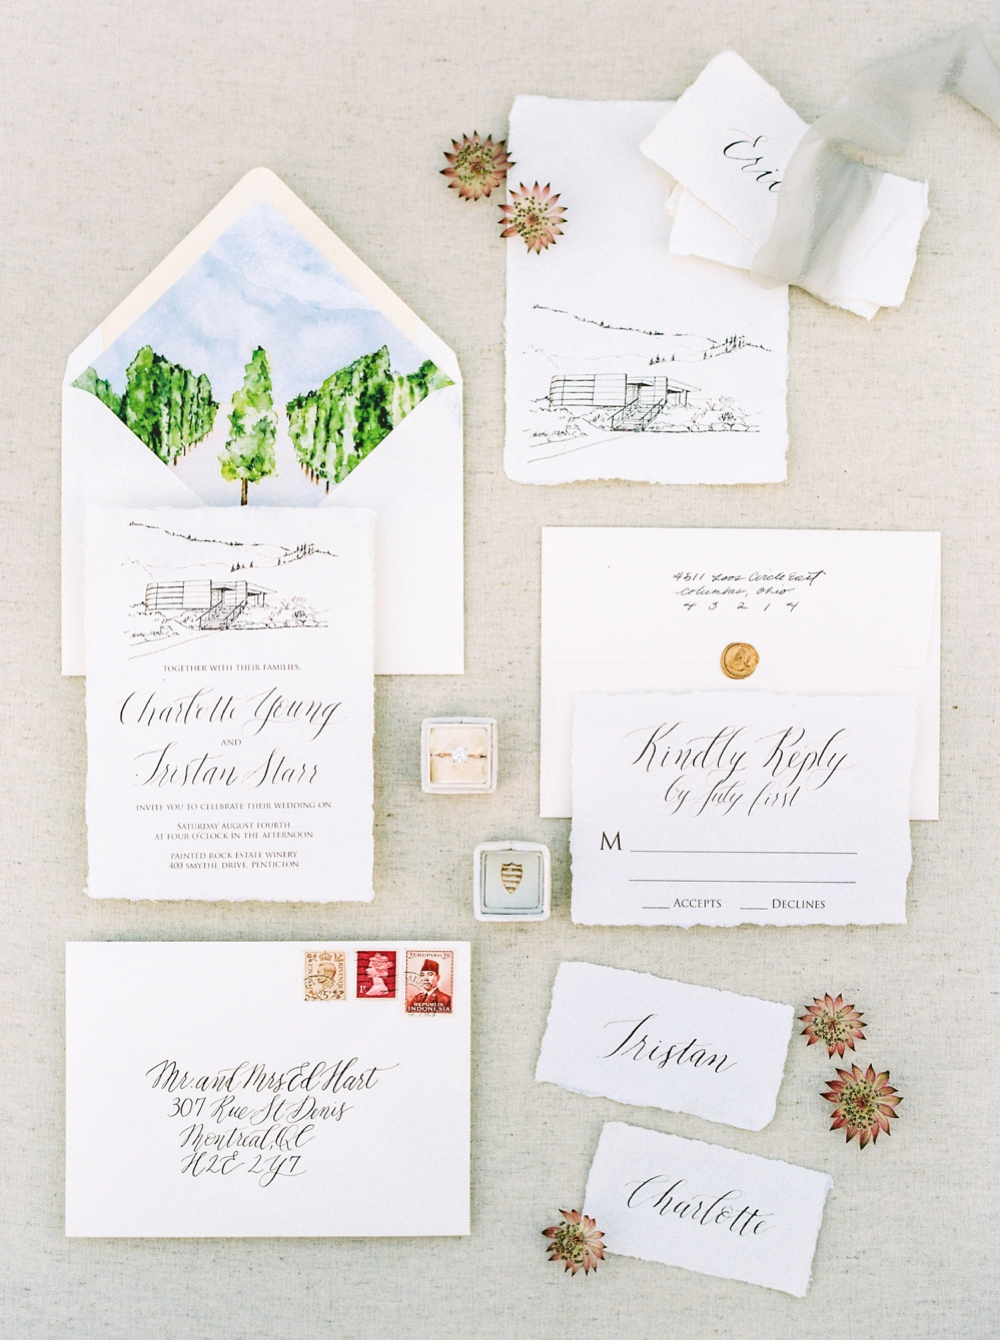 watercolor painting and calligraphy wedding stationery invitation | Painted Rock Winery | Penticton wedding photographer | Kelowna Wedding photography | Okanagan Wedding photographers